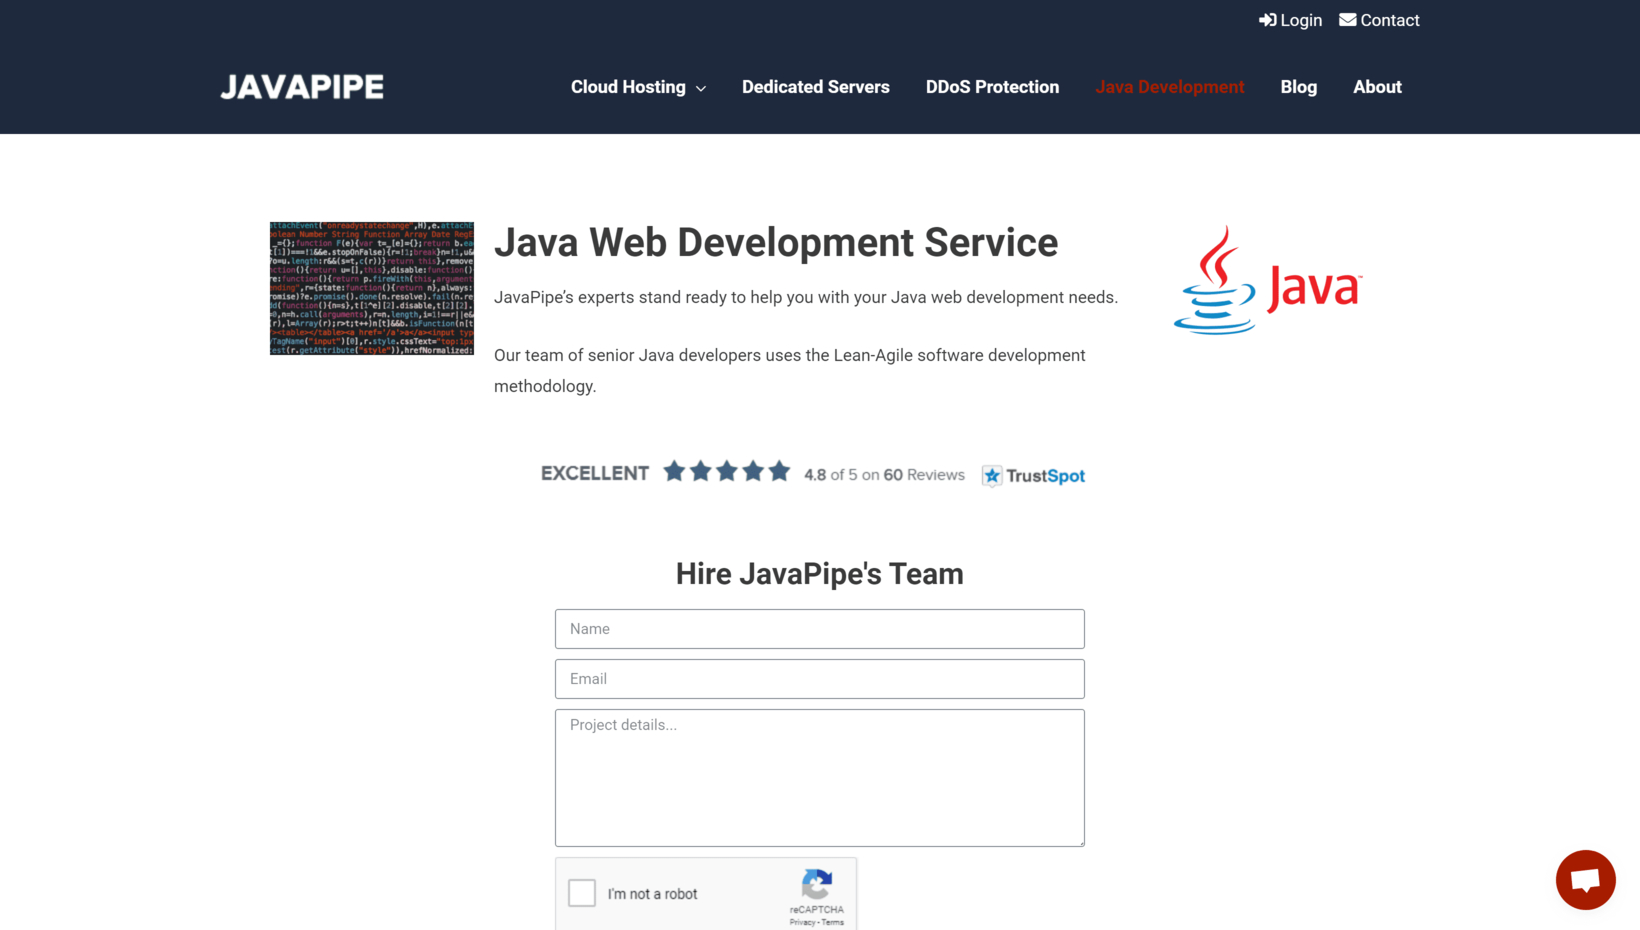 javapipe.com_java-web-development_